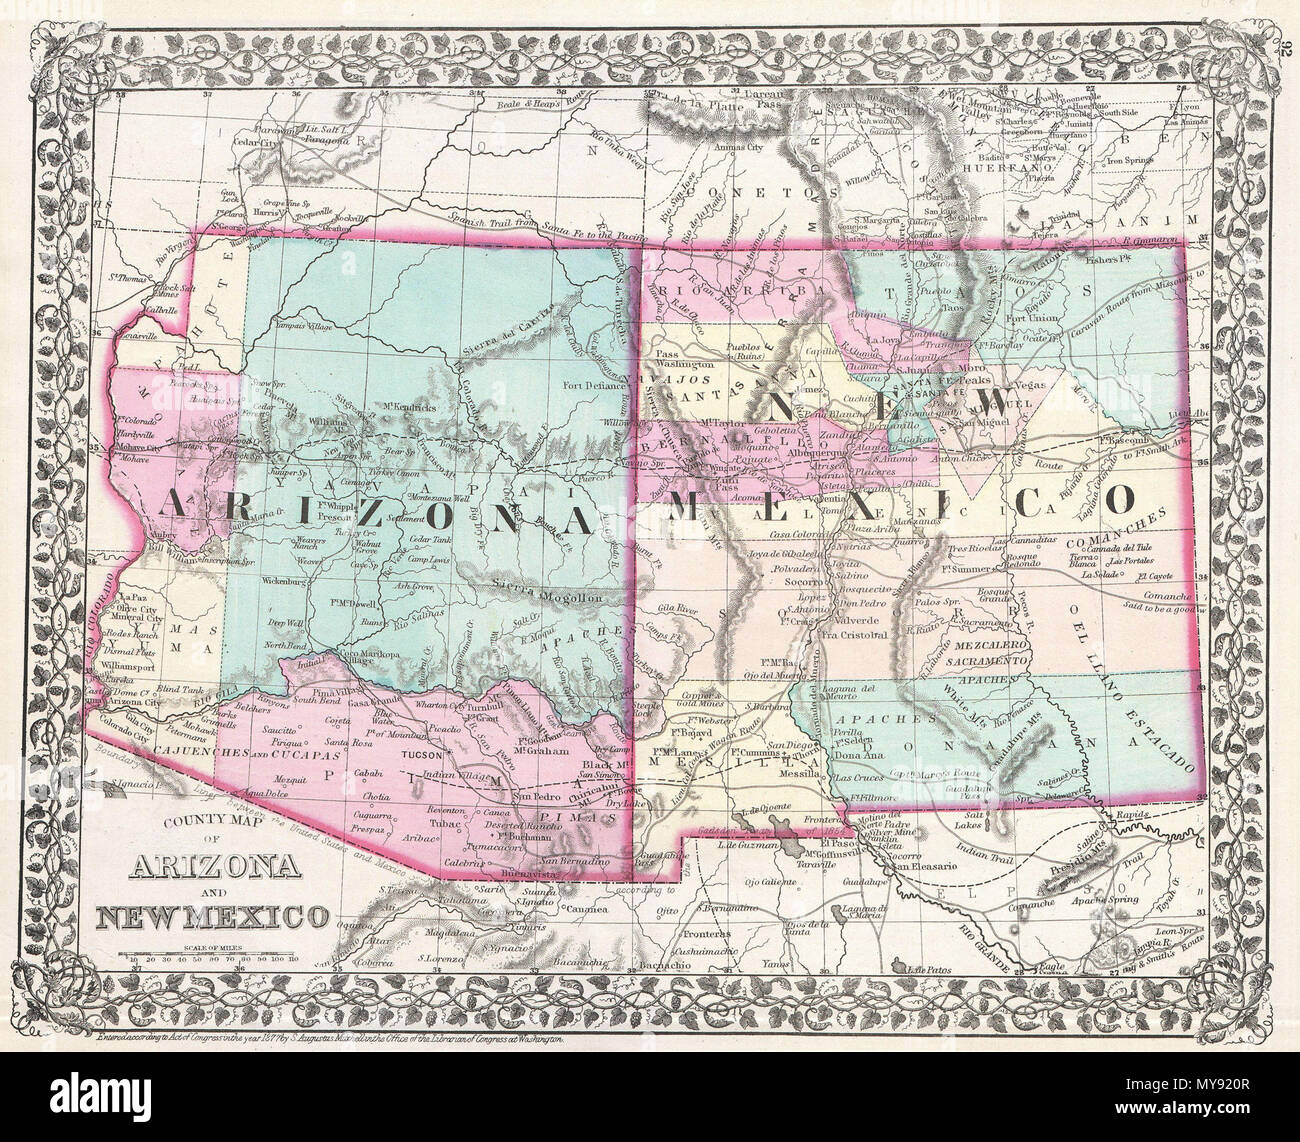 Geographical Map Of Arizona.County Map Of Arizona And New Mexico English A Beautiful Example